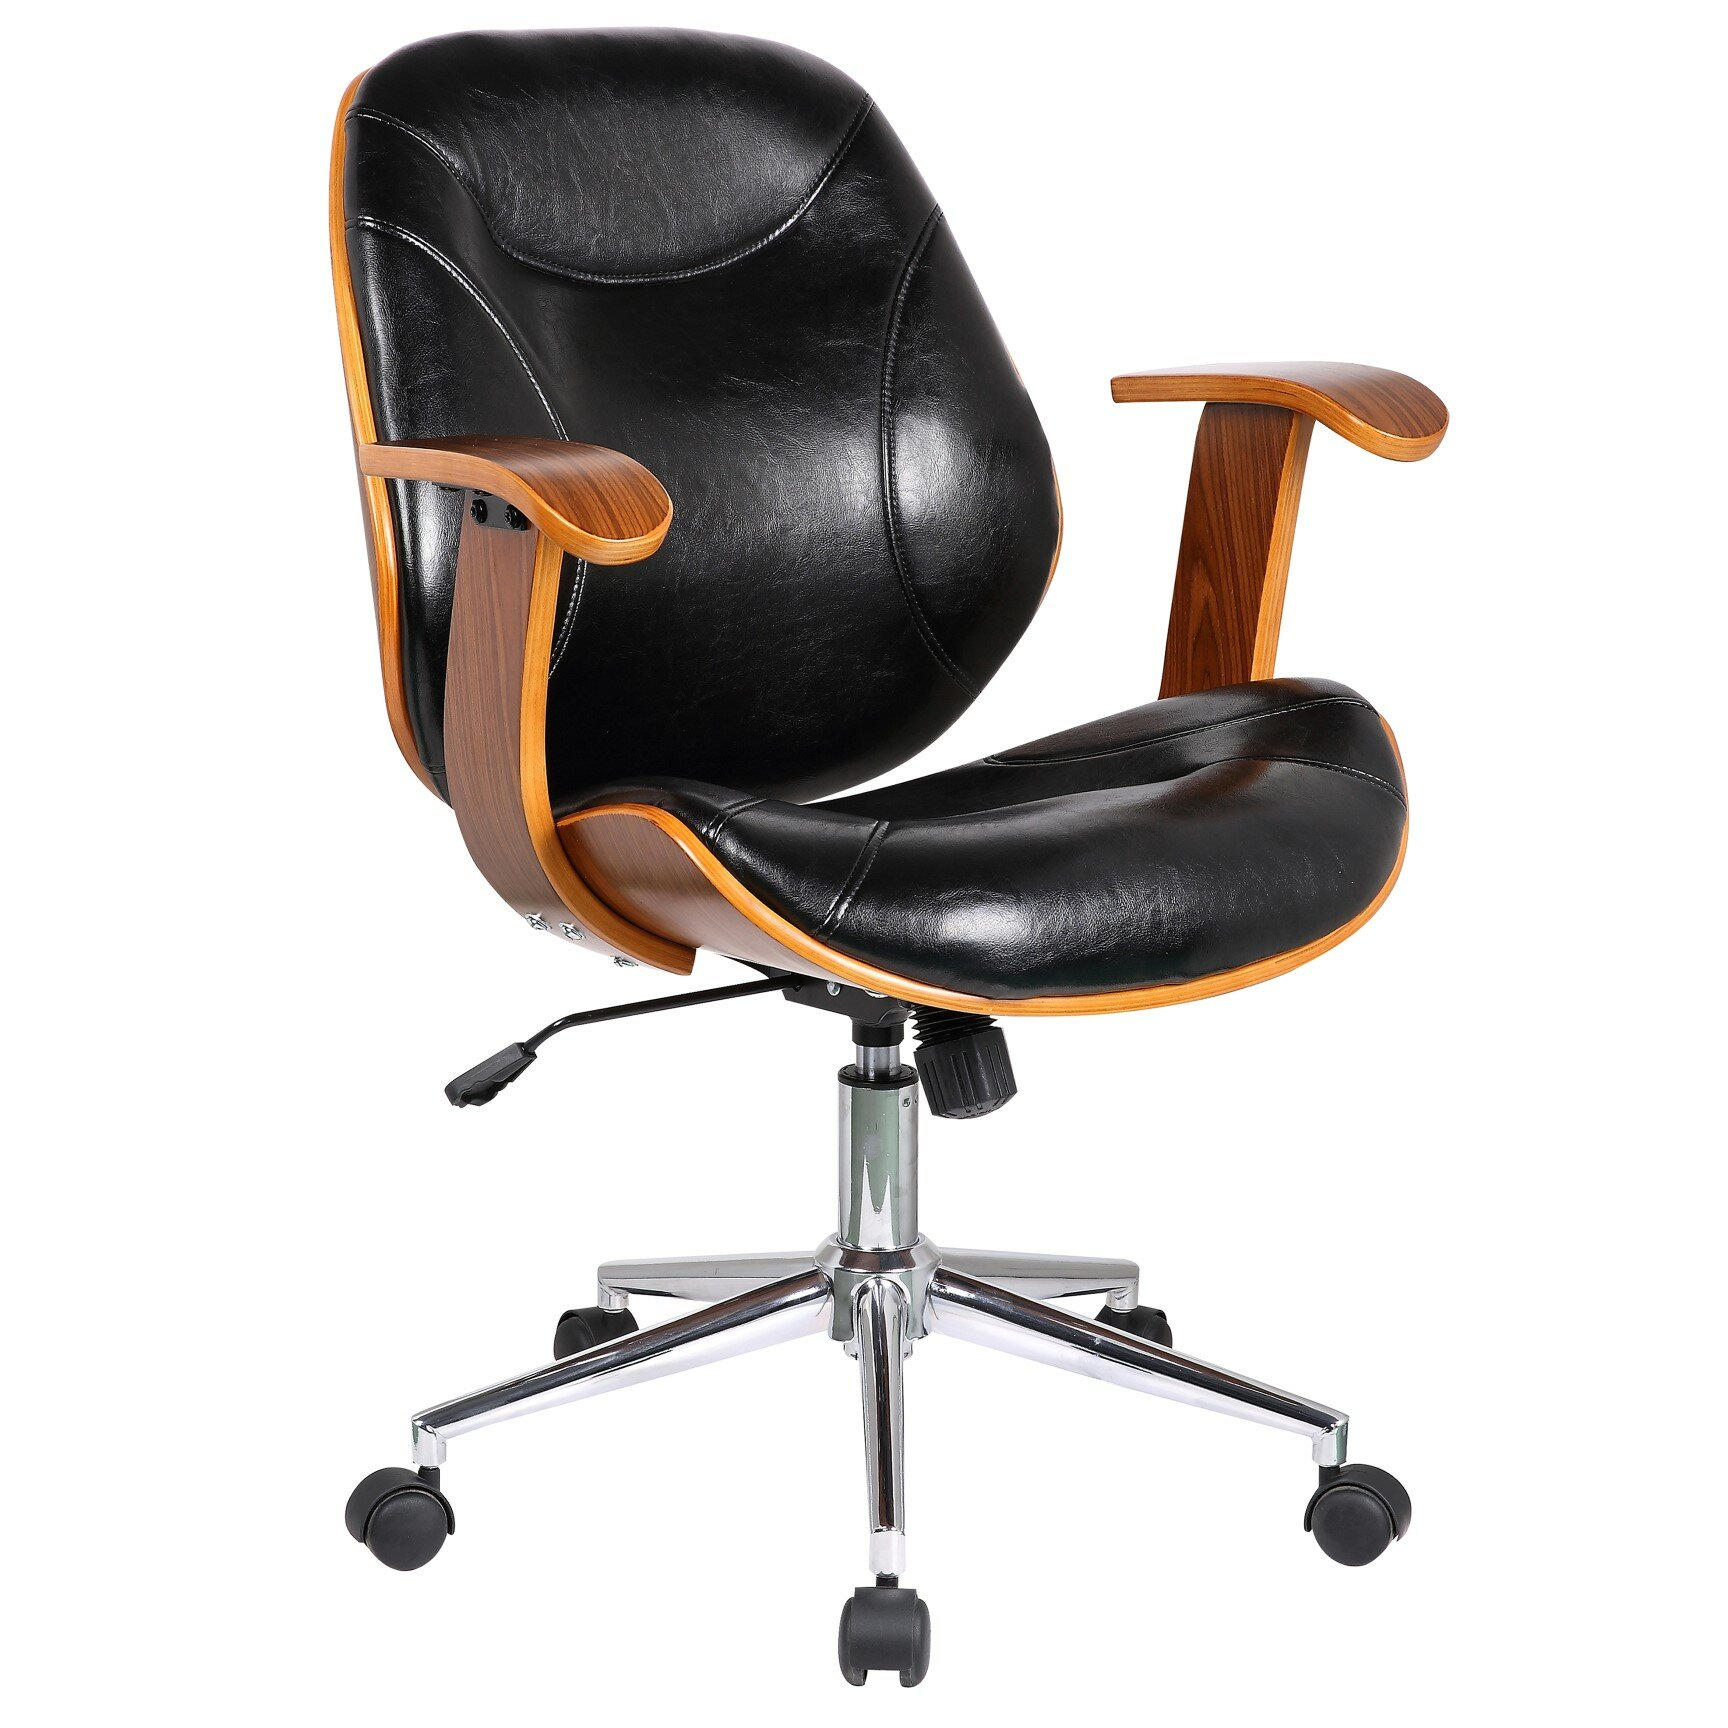 Porthos Home Cormac Adjustable Office Chair Reviews Wayfair